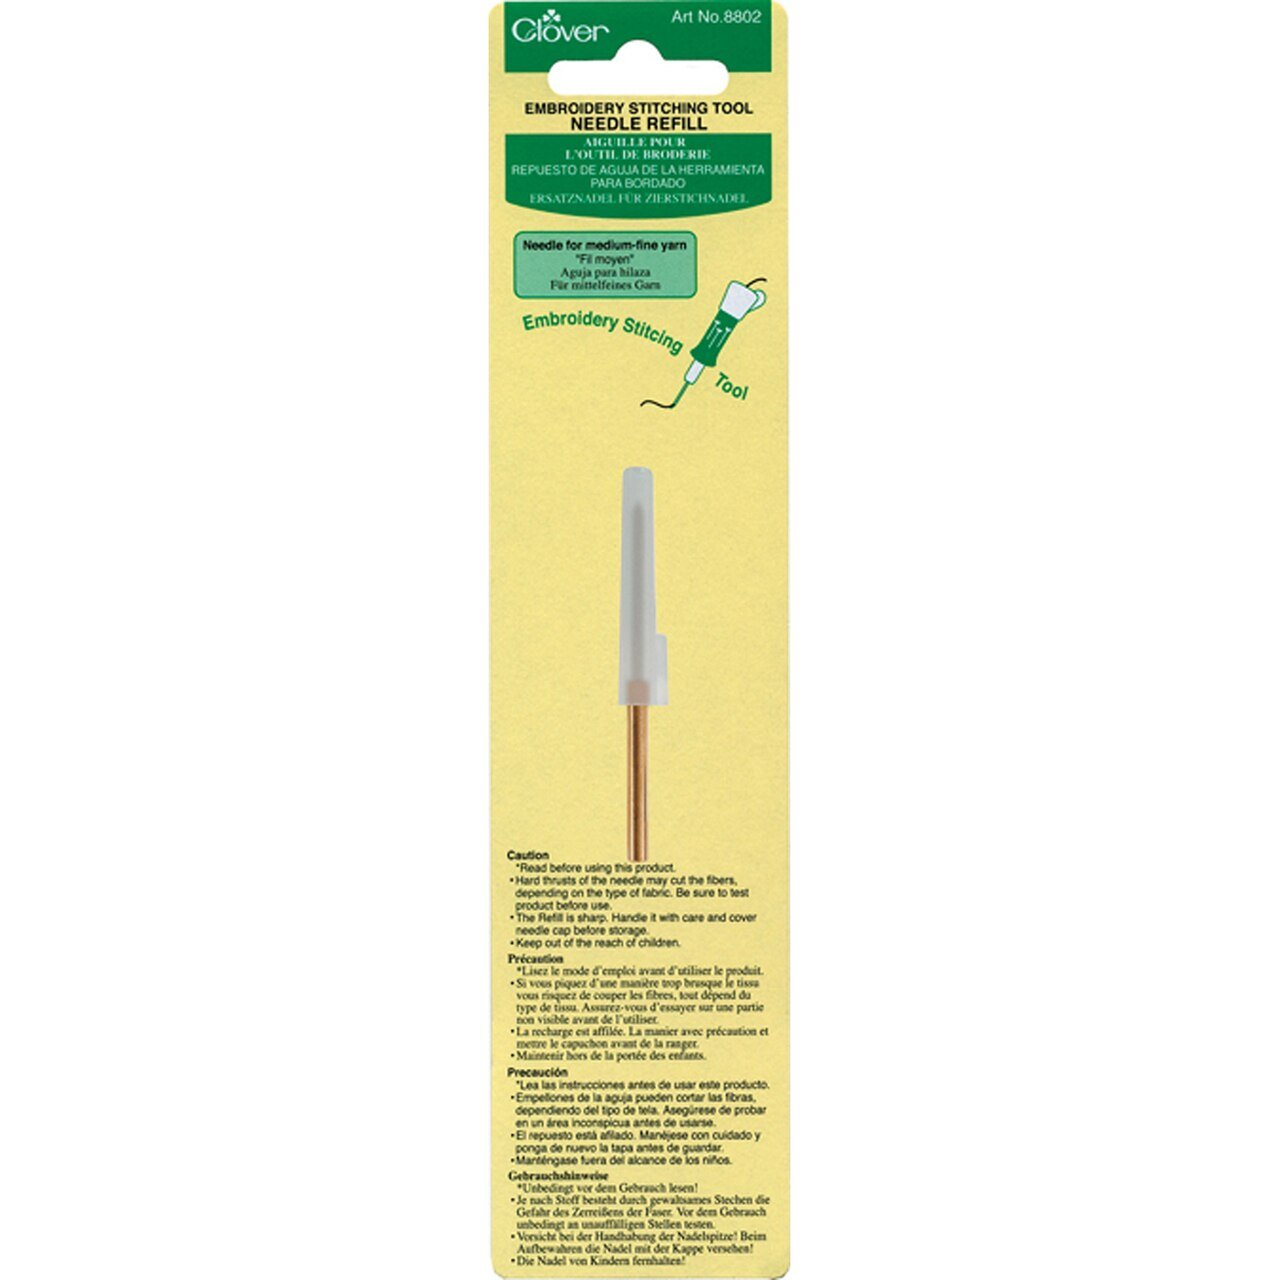 Clover 8002 - Embroidery Stitching Tool - Needle Refill -